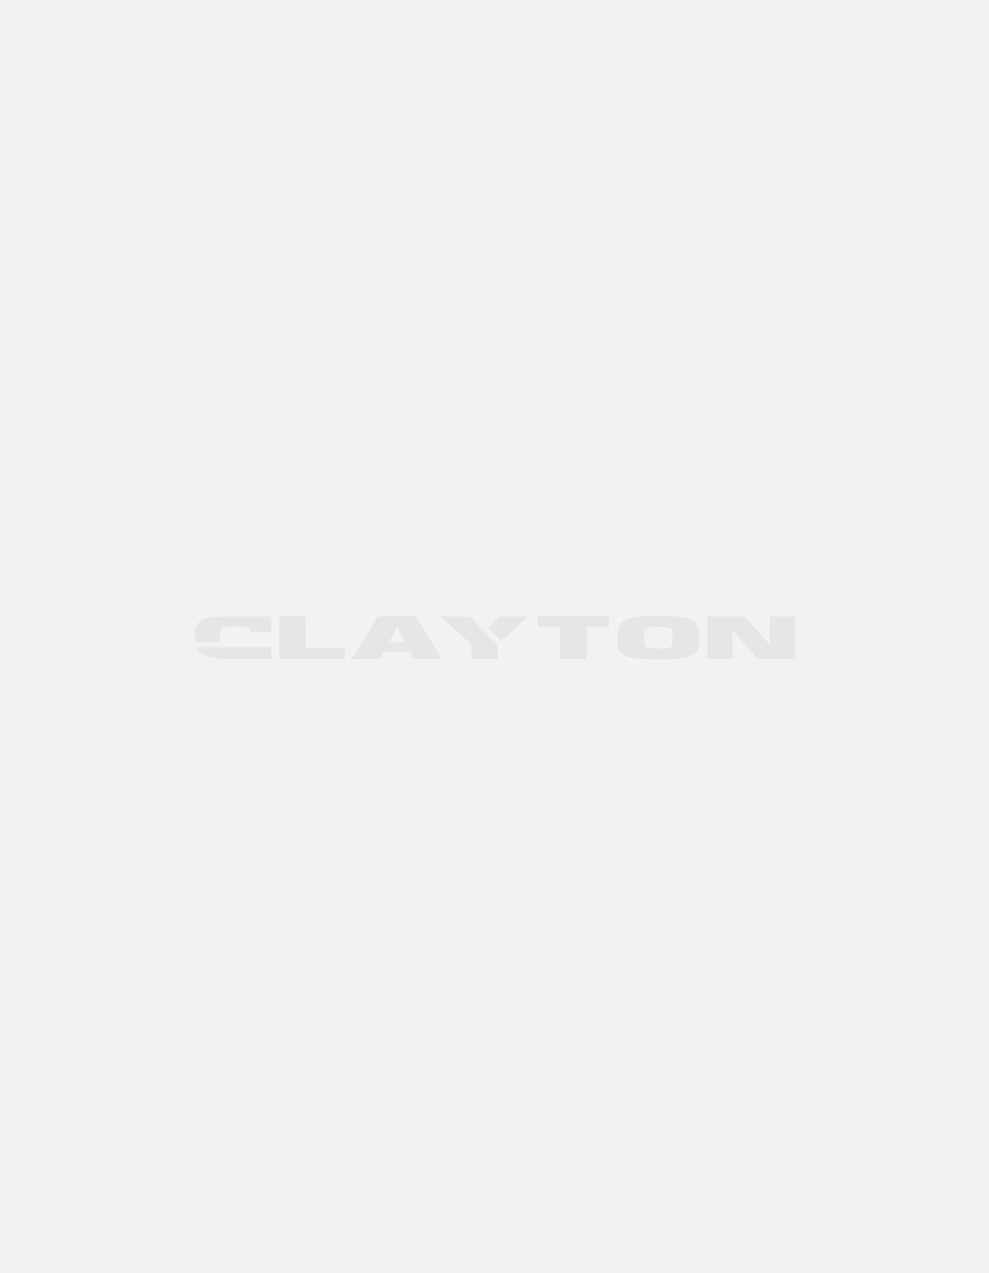 https://www.claytonitalia.com/media/catalog/product/cache/2/small_image/460x590/9df78eab33525d08d6e5fb8d27136e95/g/i/gift53_nt.jpg